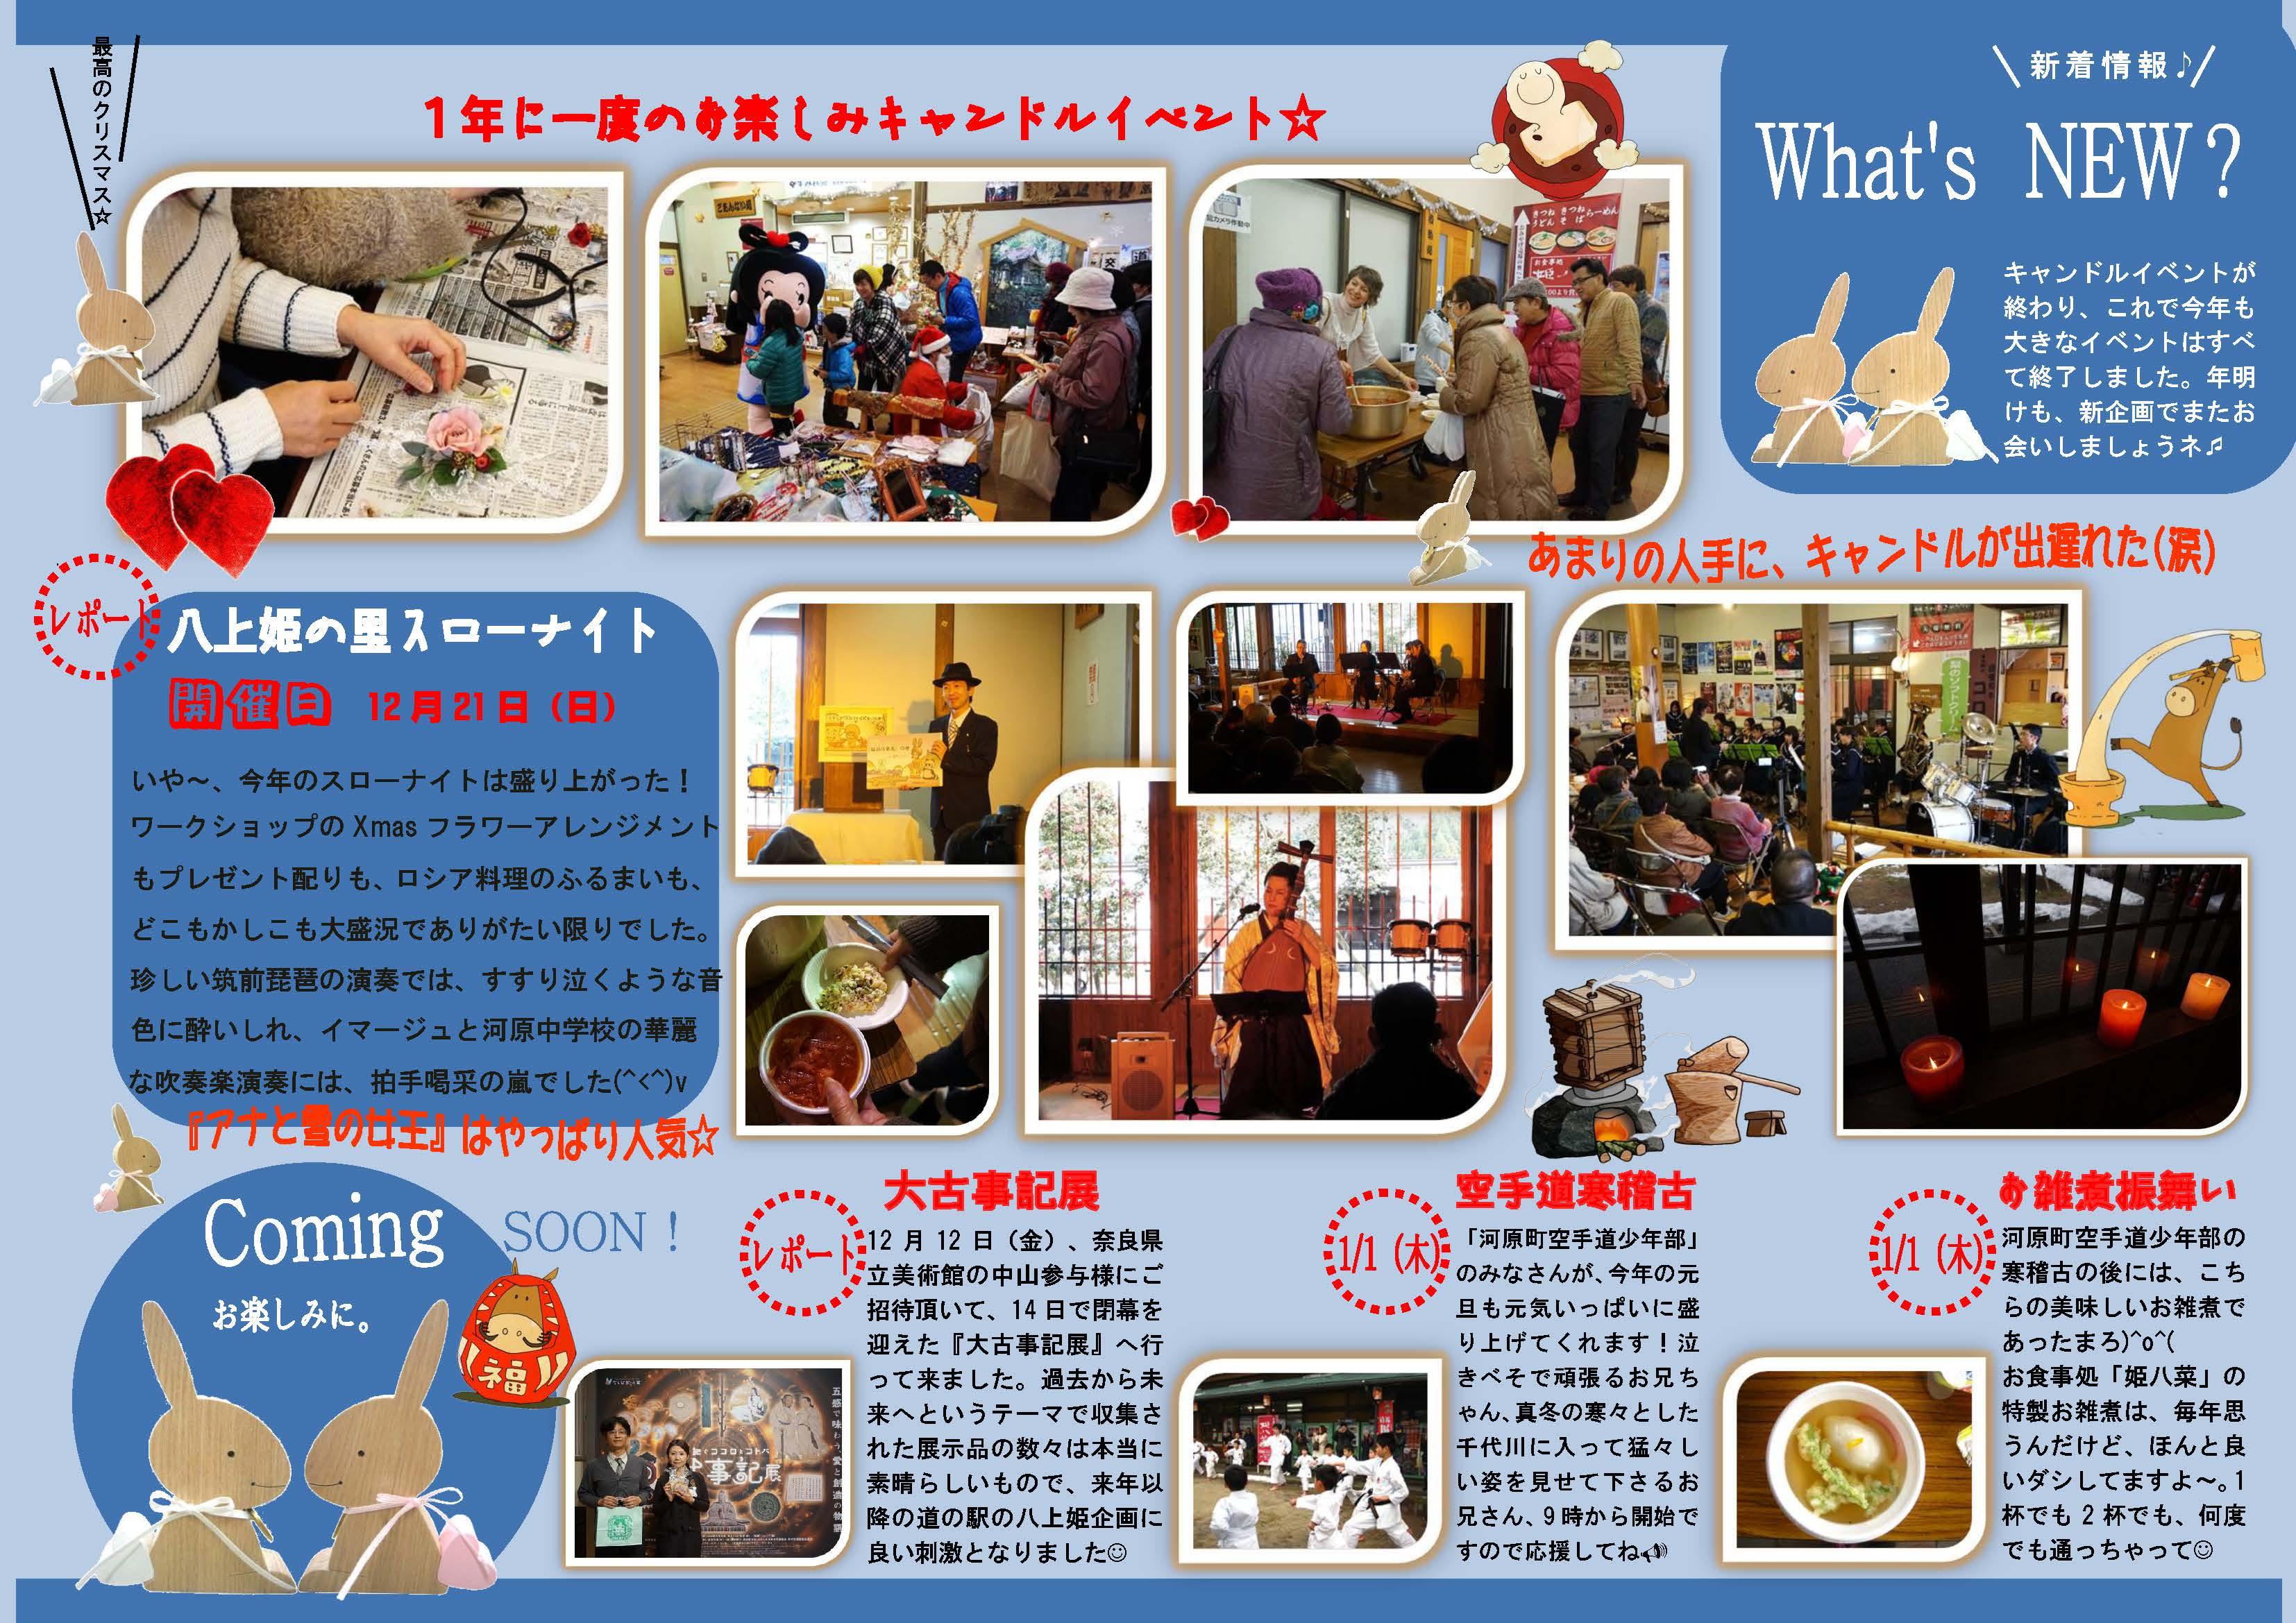 What's NEW?原稿№42